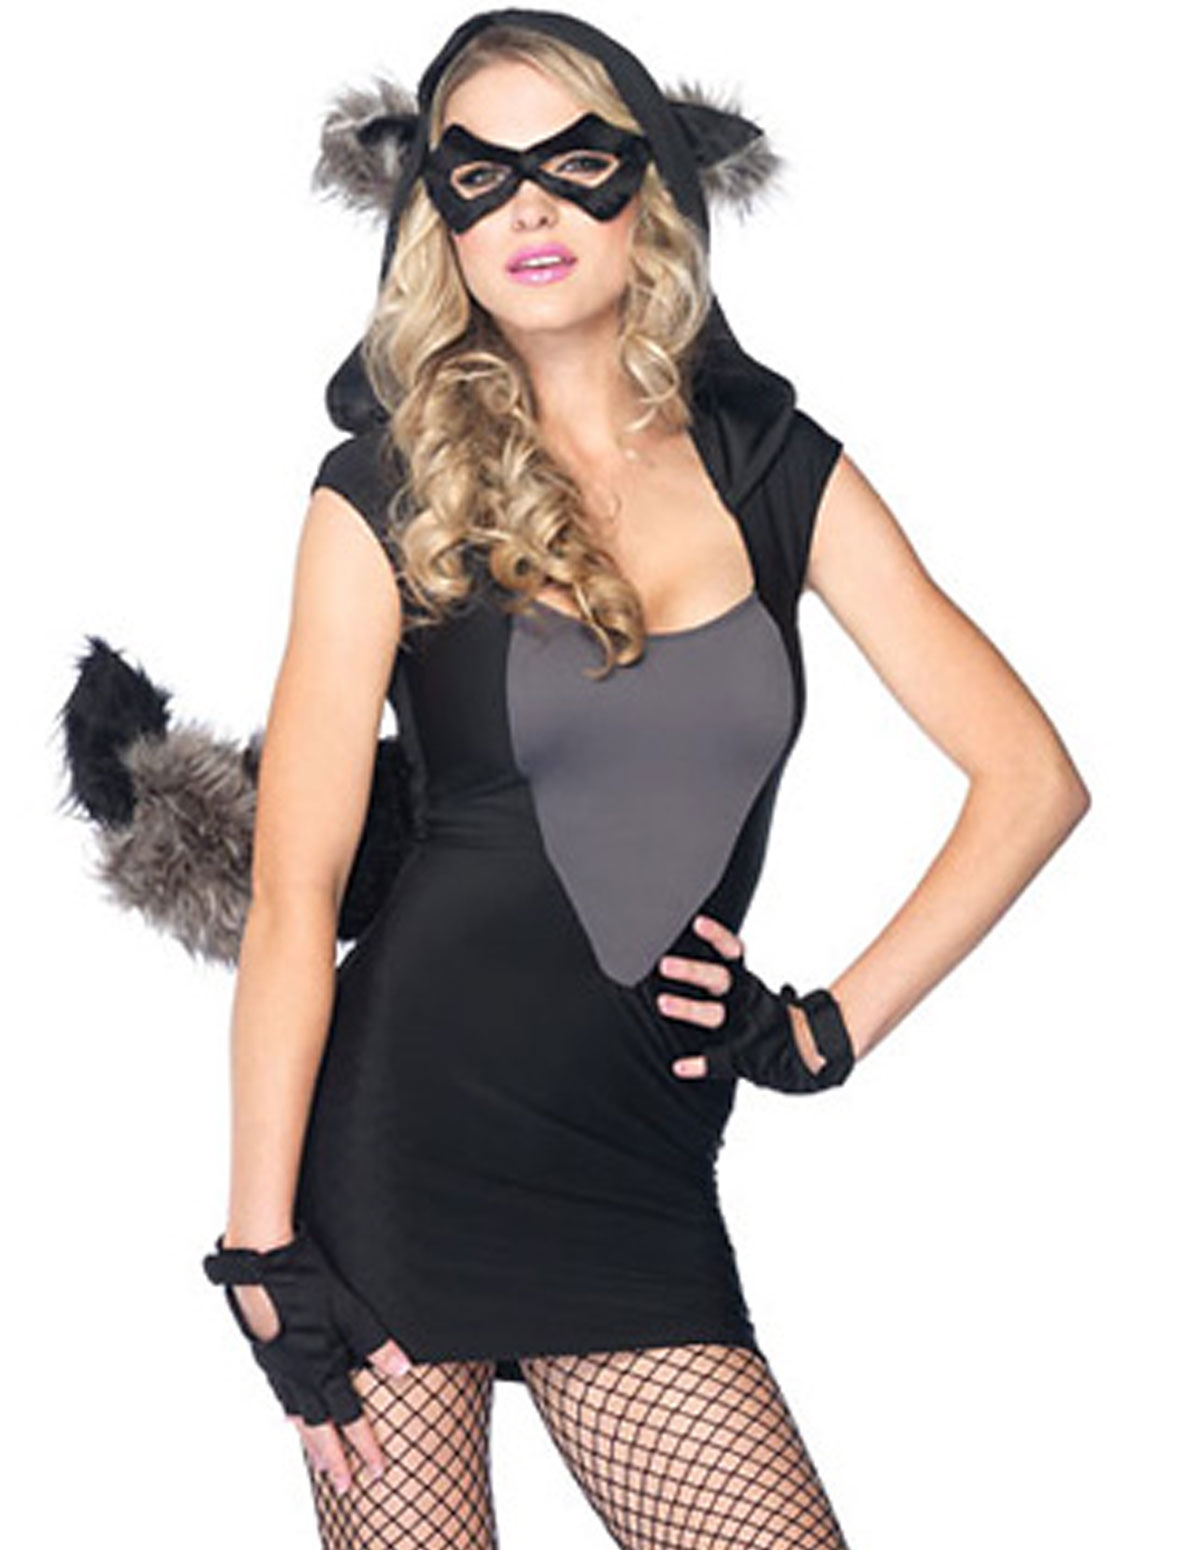 Risky Raccoon Costume